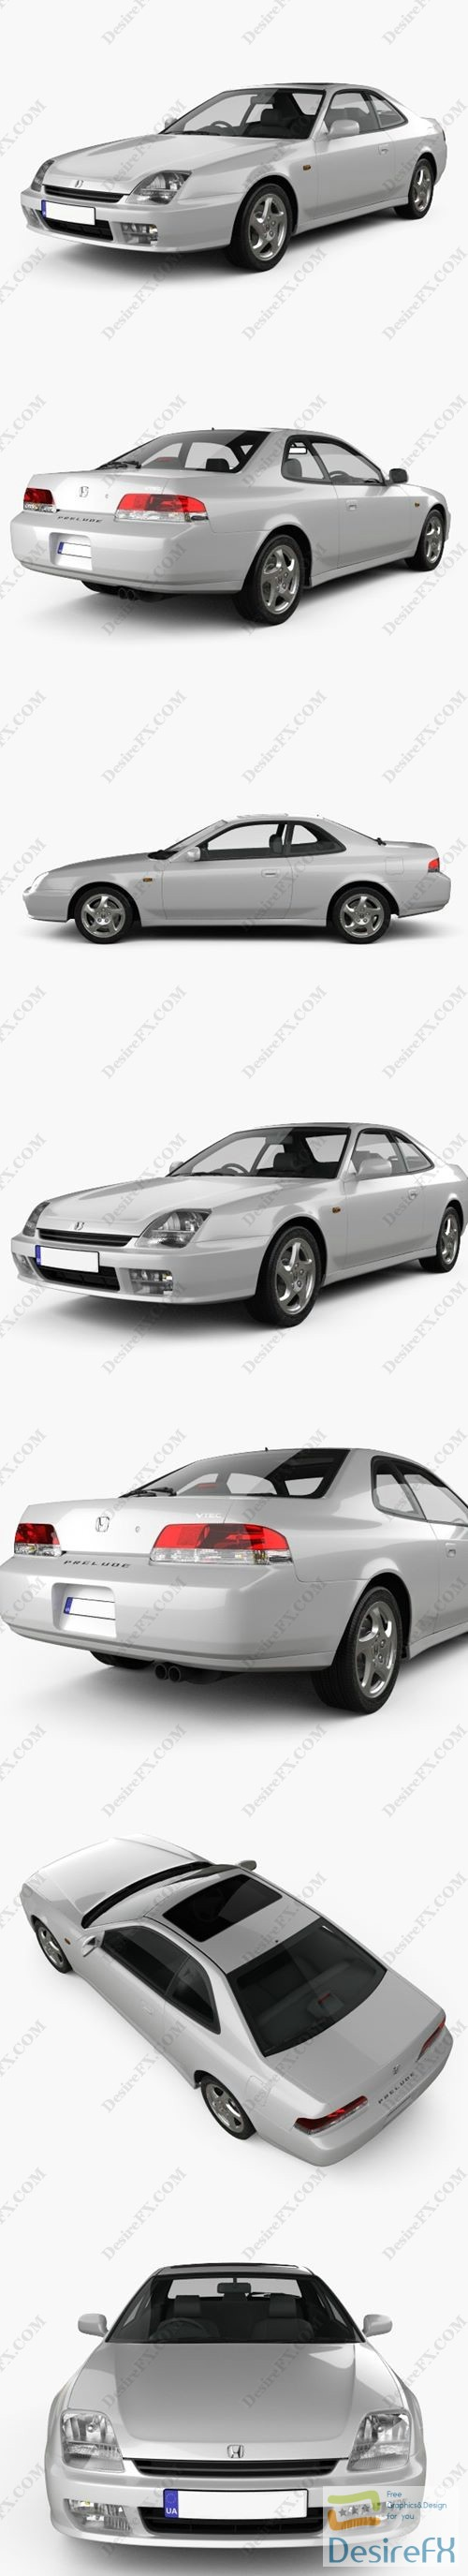 3d-models - Honda Prelude BB5 1997 3D Model